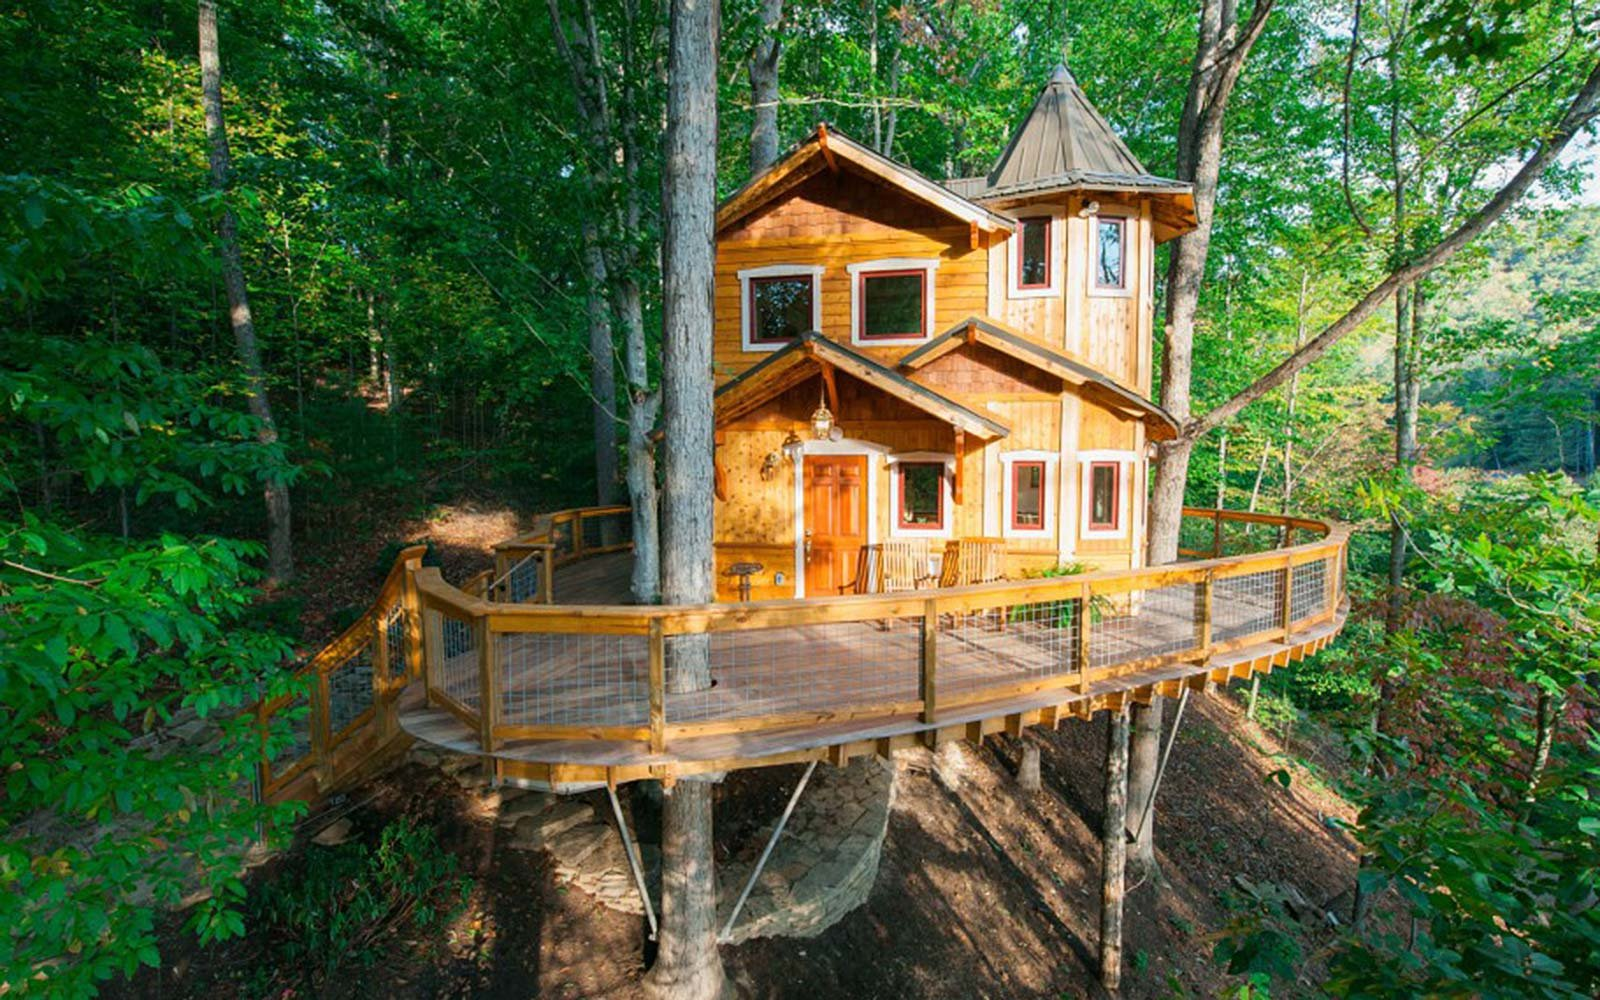 The Best Airbnbs To Rent For Fall Foliage Views